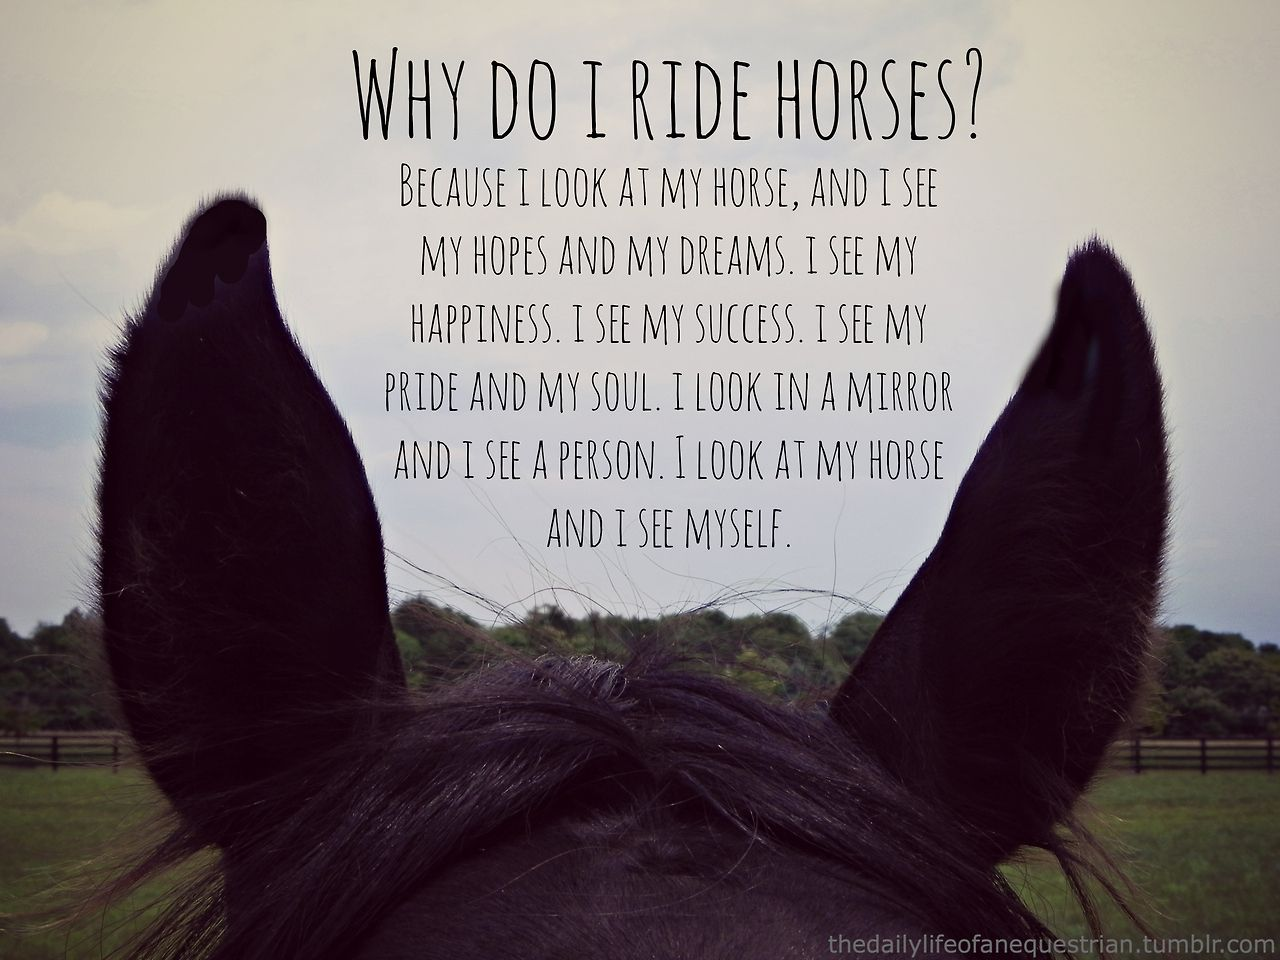 Pics photos quote i wrote for my horse com account s equestrian - Why Do I Ride Horses Because I Look At My Horse And I See